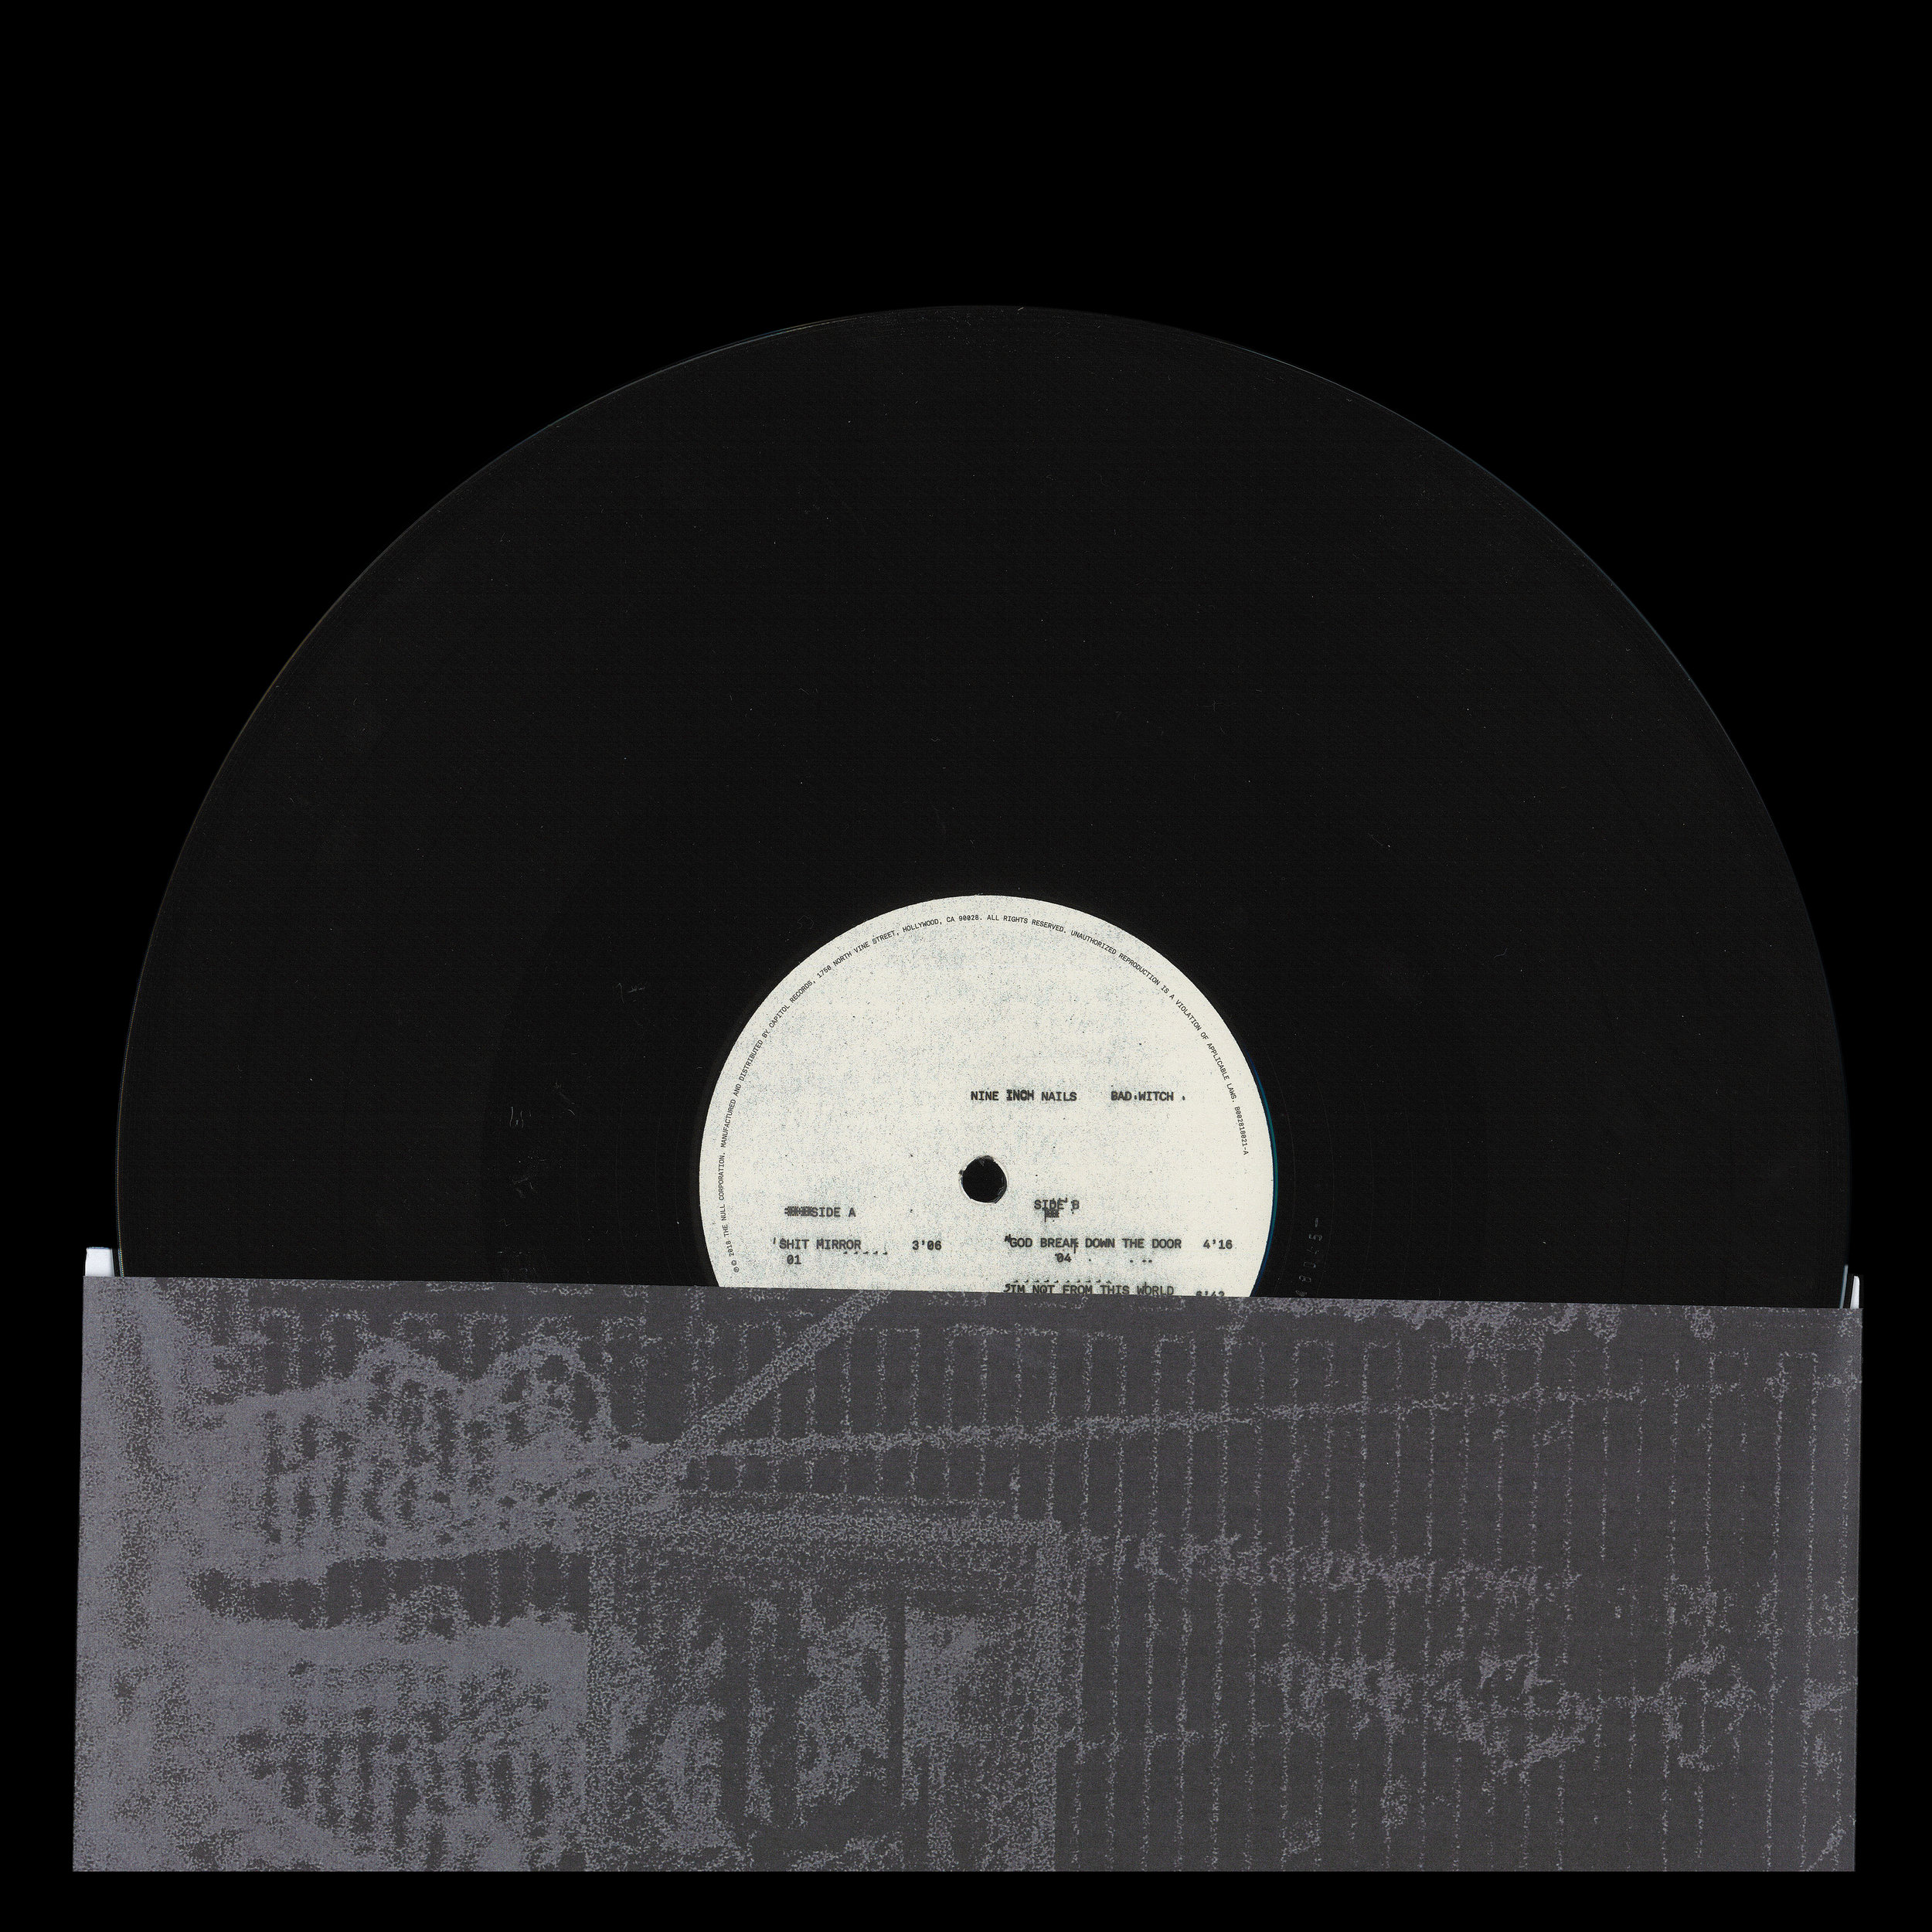 nine inch nails - bad witch - lp - vinyl a web.jpg